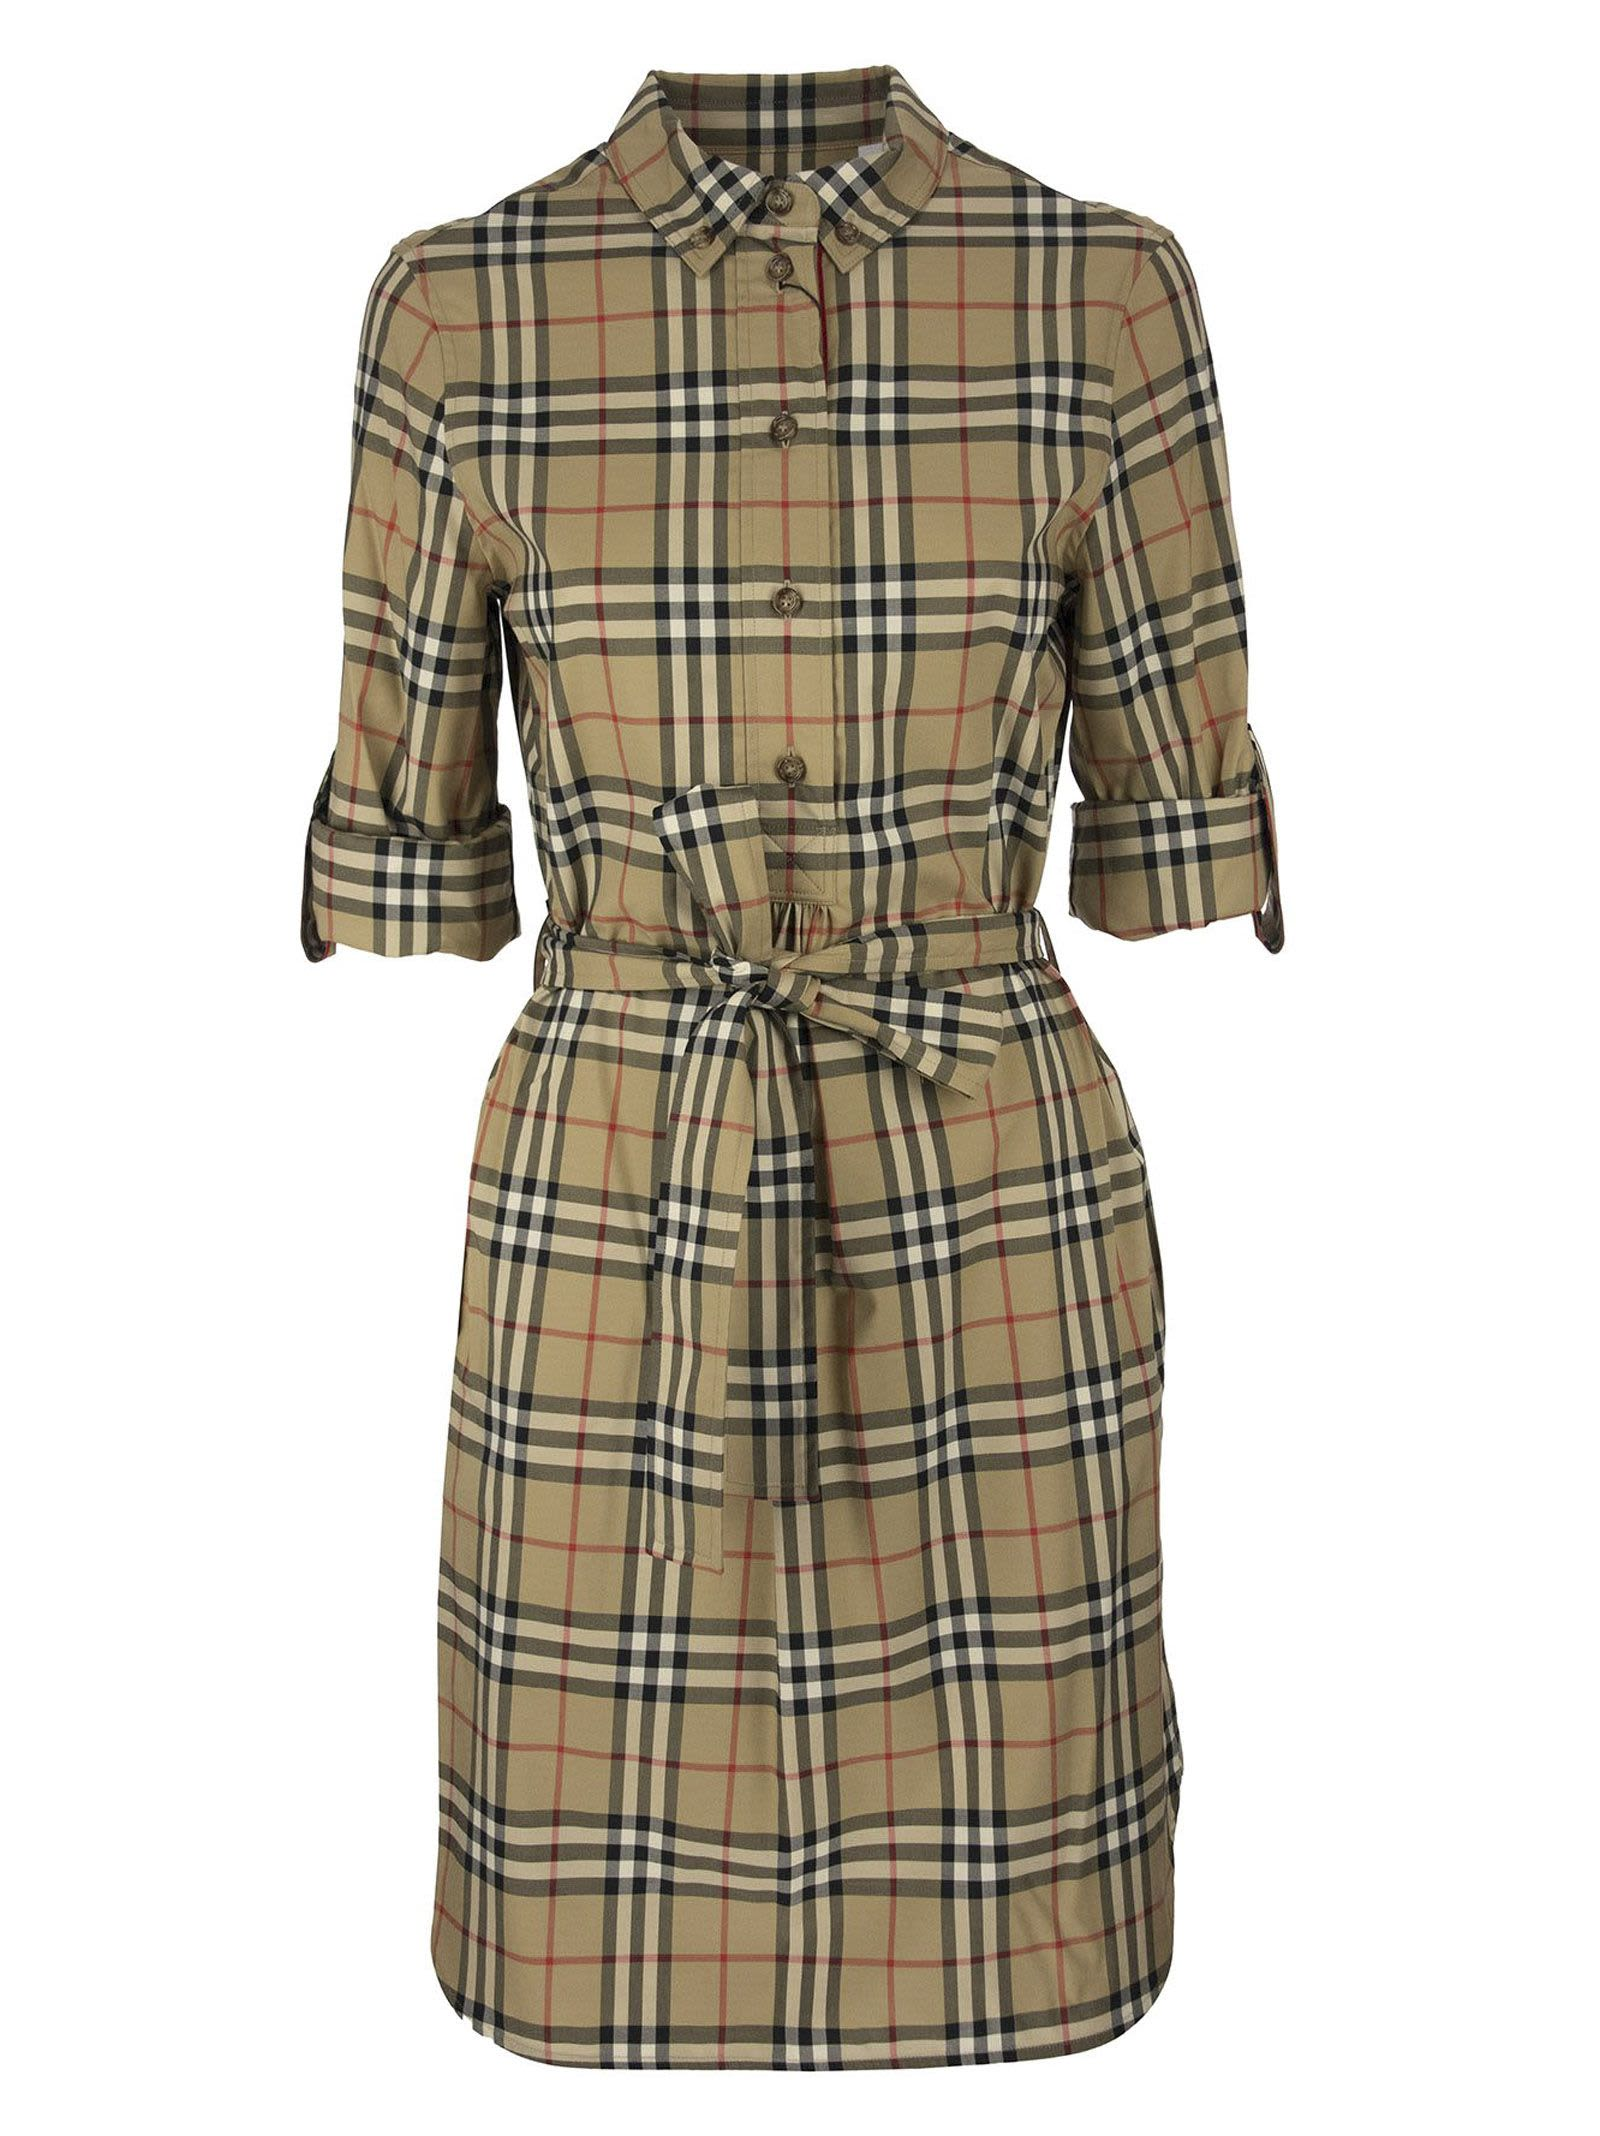 Burberry Giovanna – Stretch Cotton Chemise Dress With Vintage Check Pattern And Belt